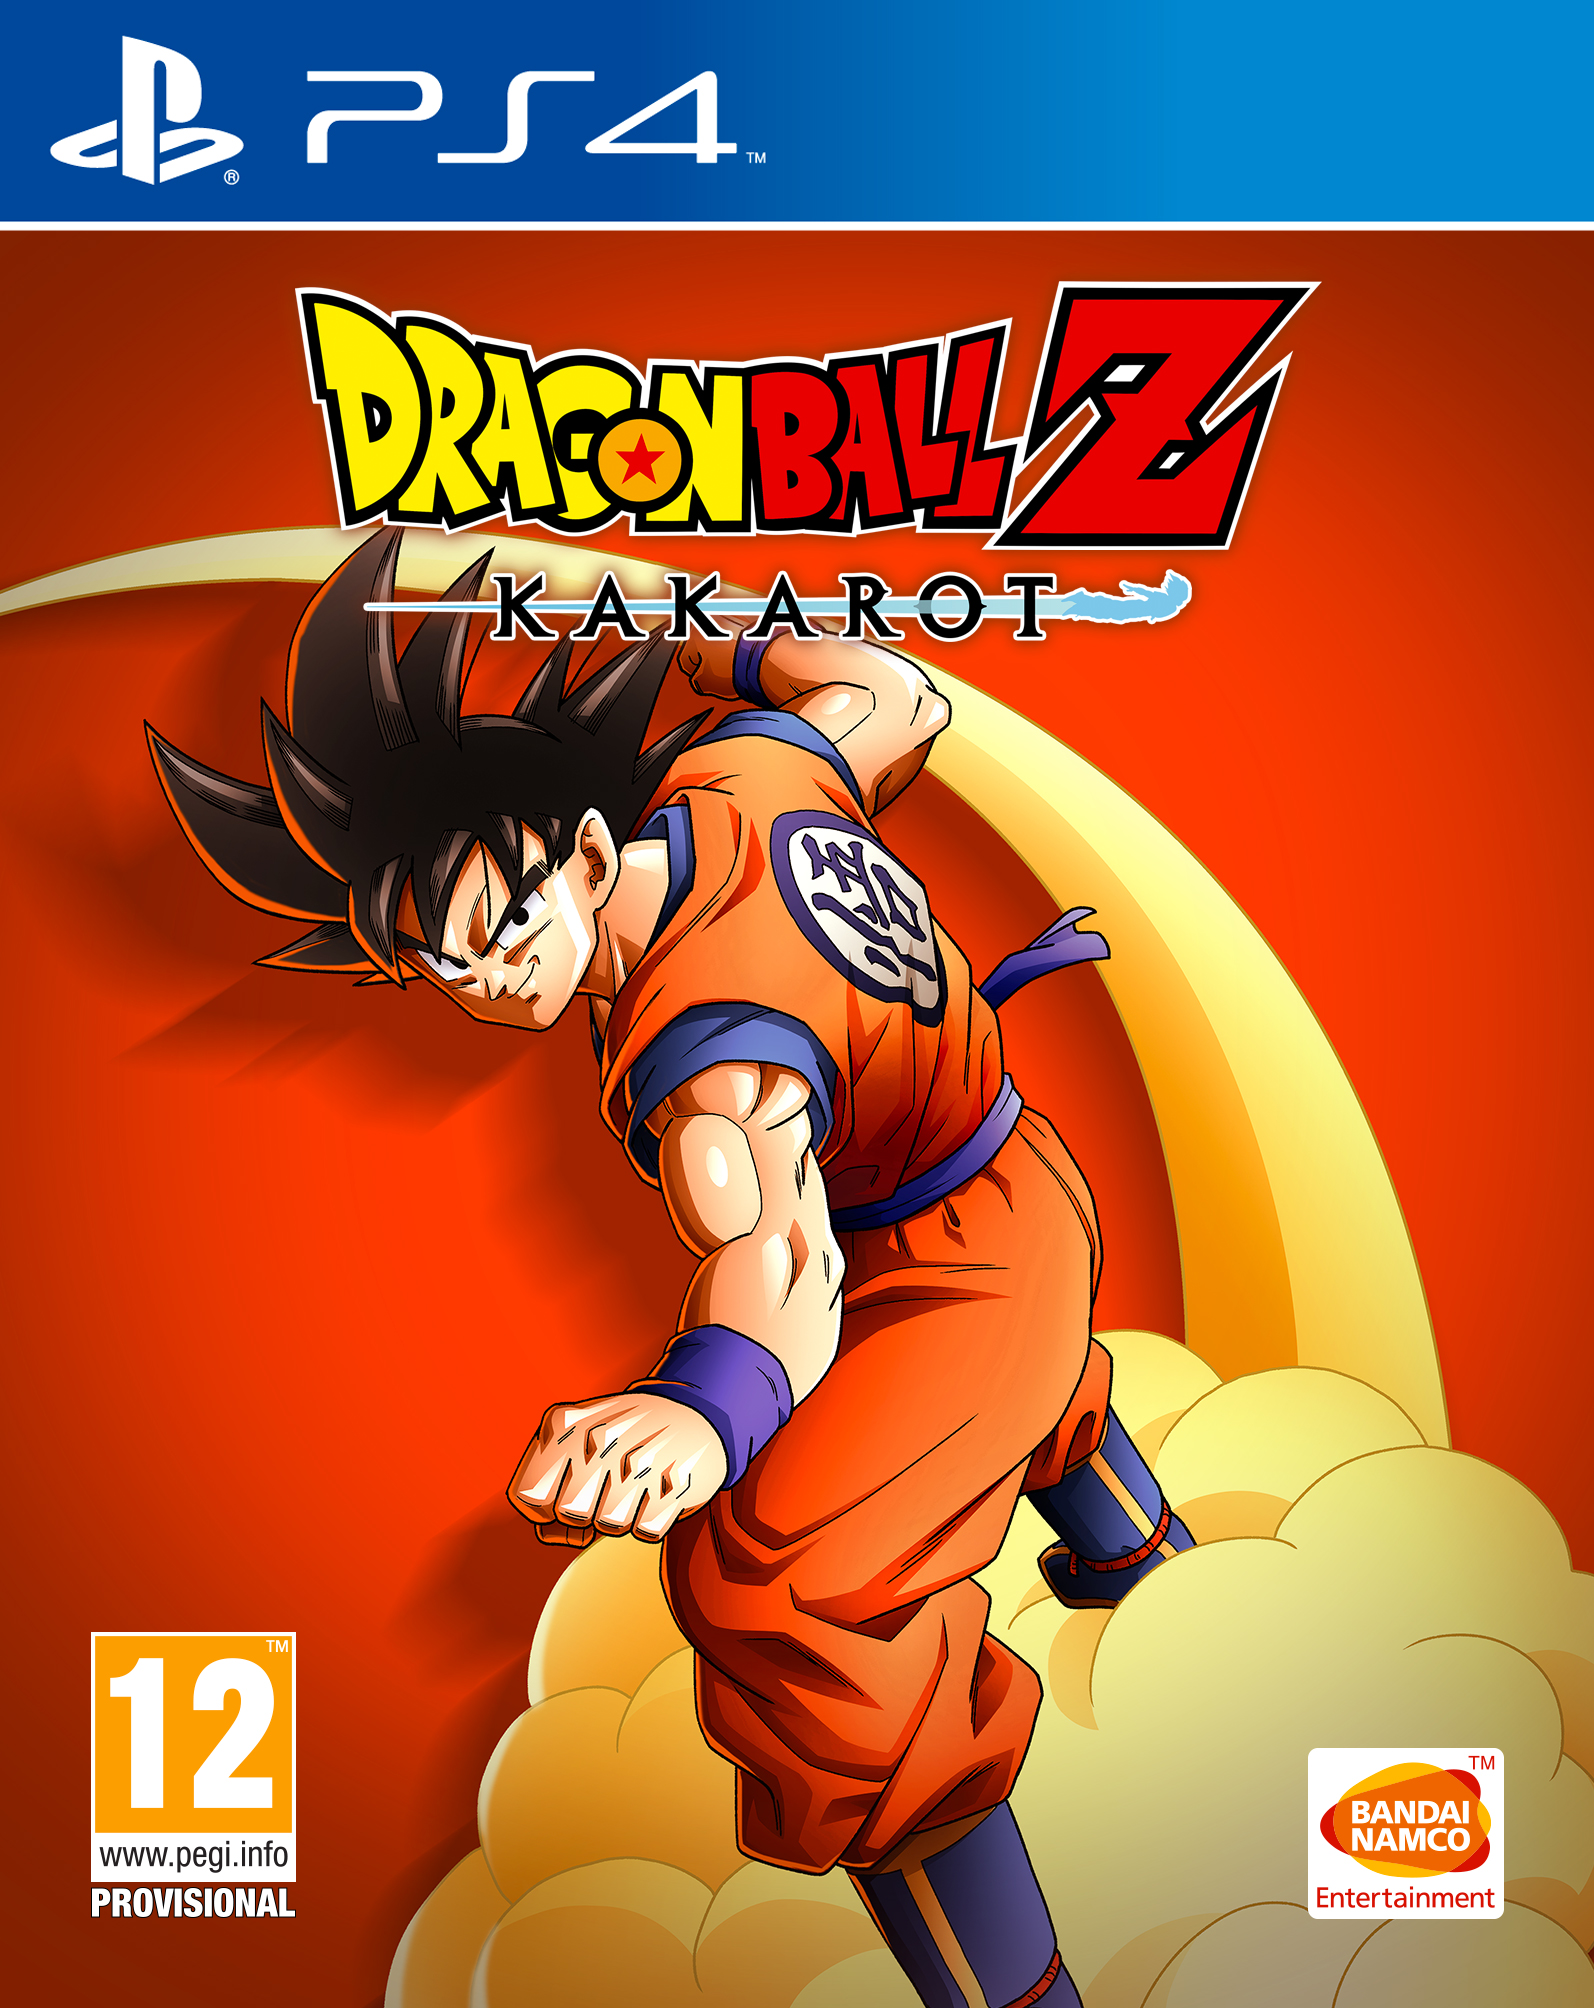 https://www.bigbang.si/upload/catalog/product/668376/dragon-ball-z-kakarot-ps4-box-41933_5e16b3d396a54.jpg